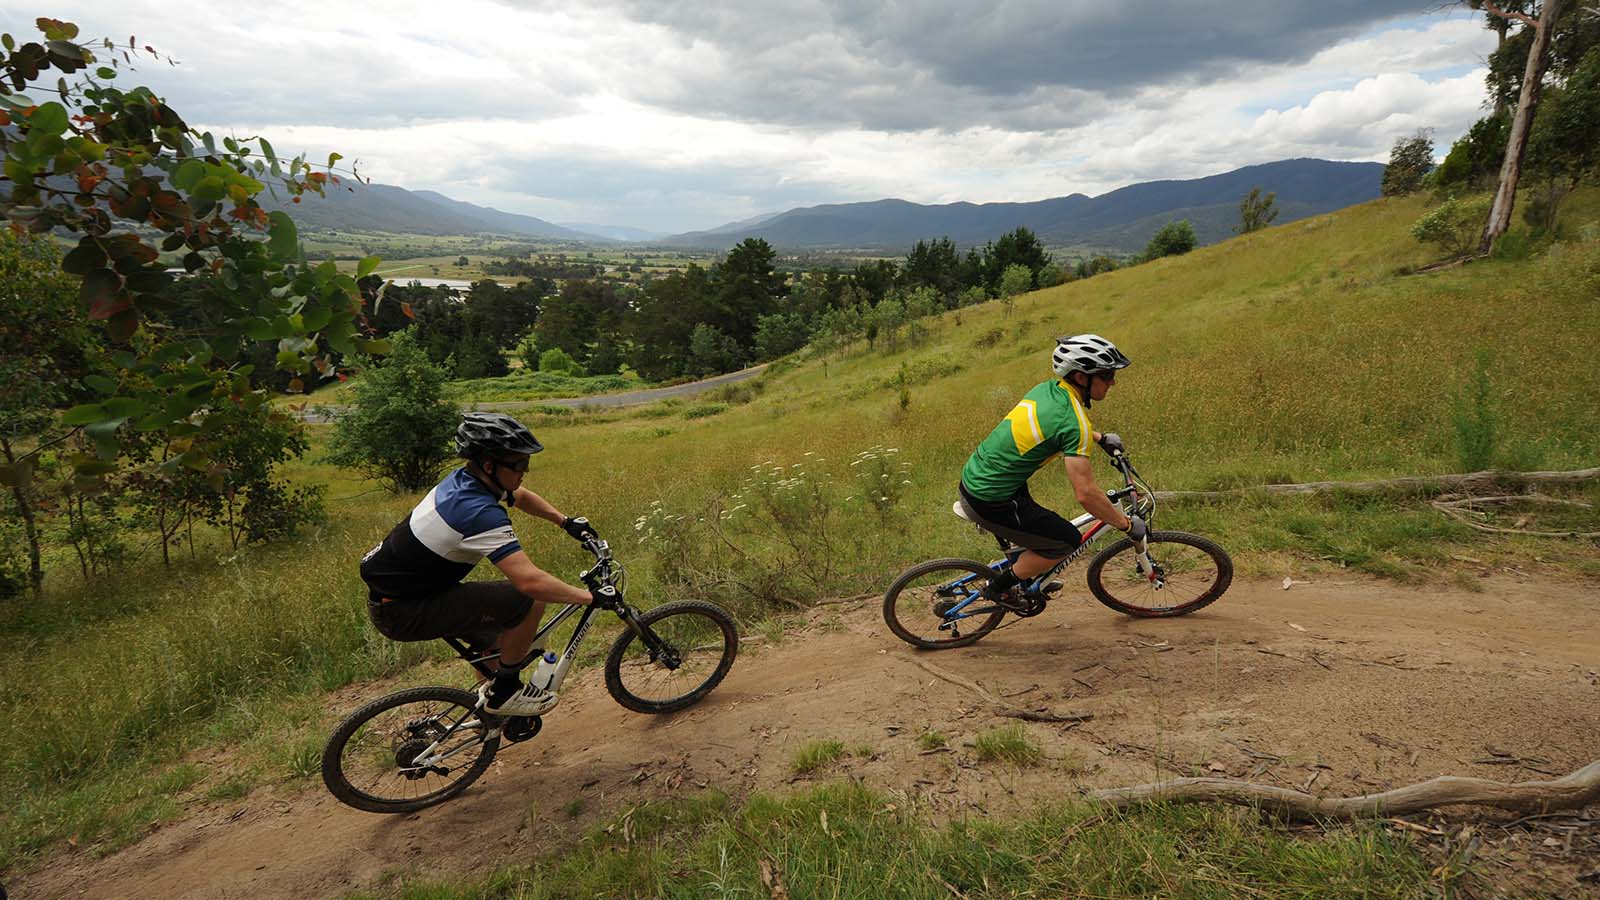 Big Hill Mountain Bike Park, High Country, Victoria, Australia